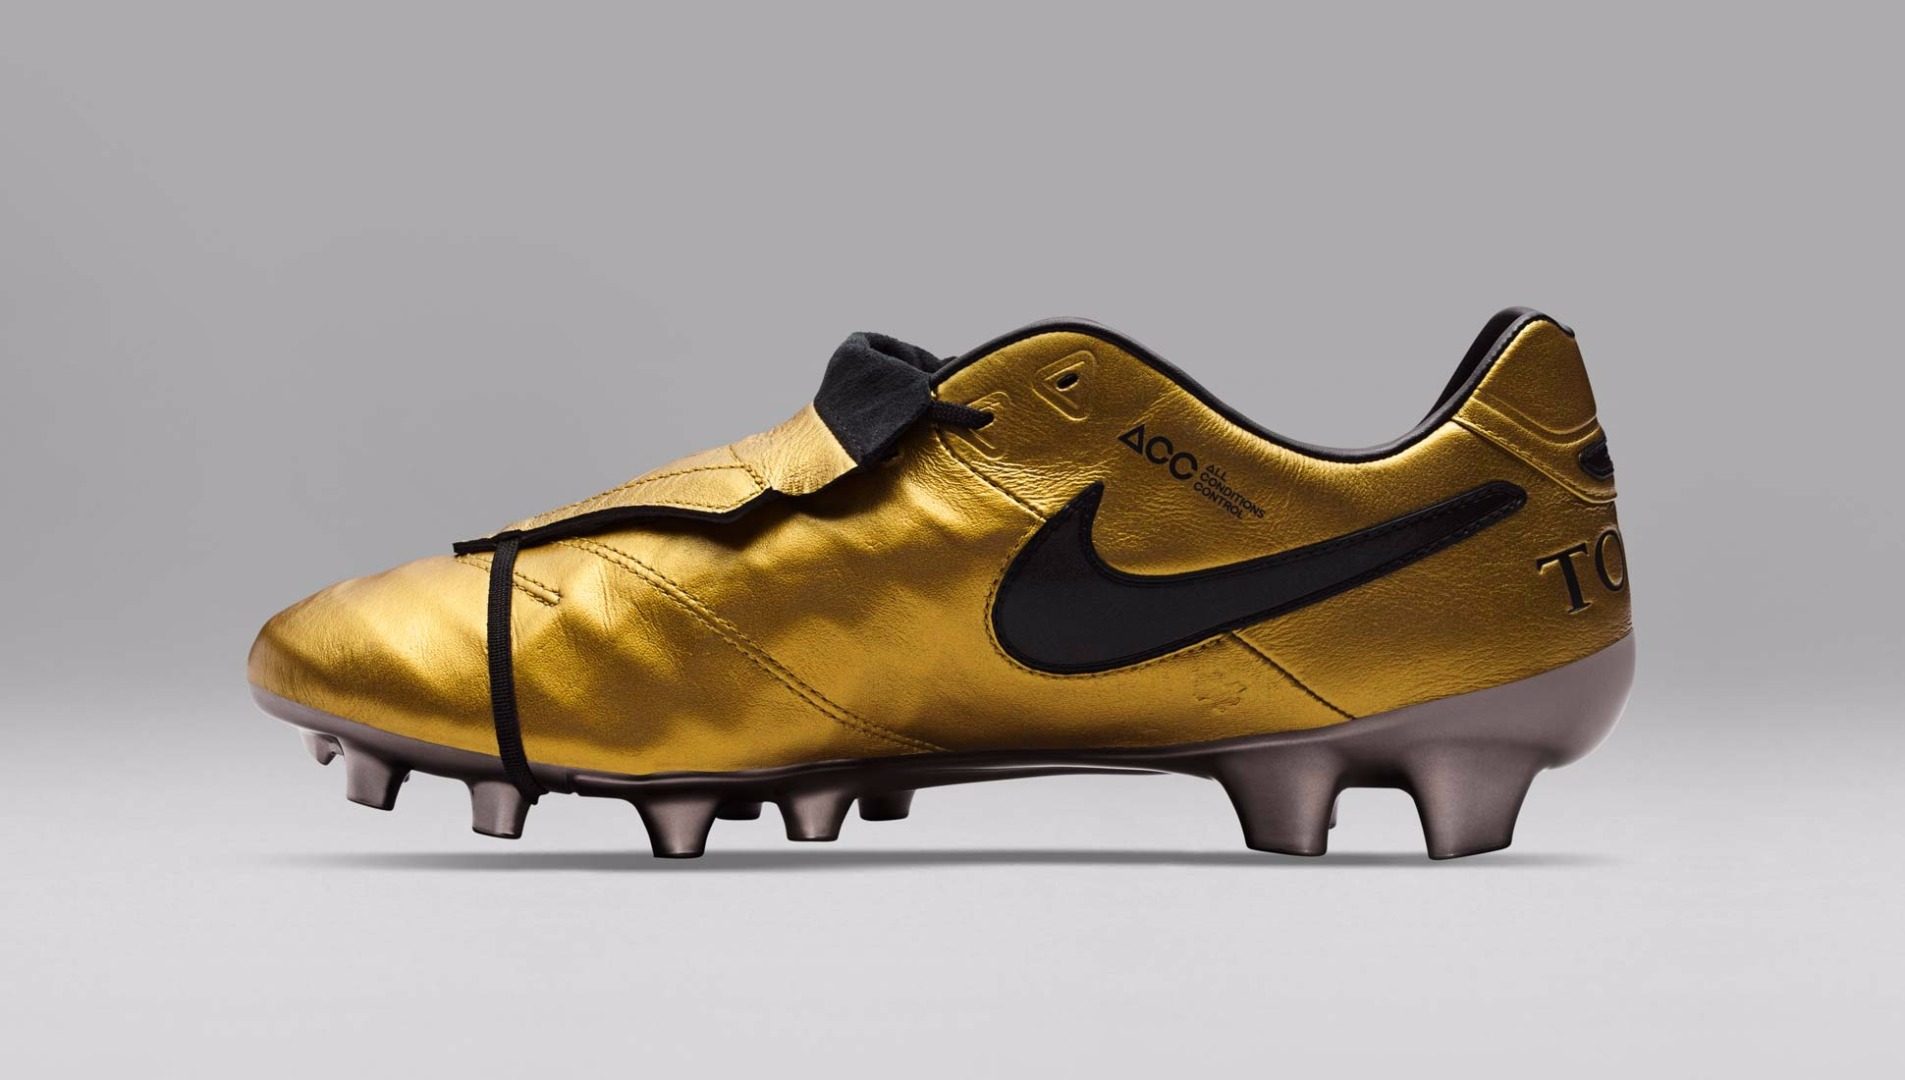 detailed look b4247 4036a Nike Tiempo Legend Totti Football Boots - SoccerBible